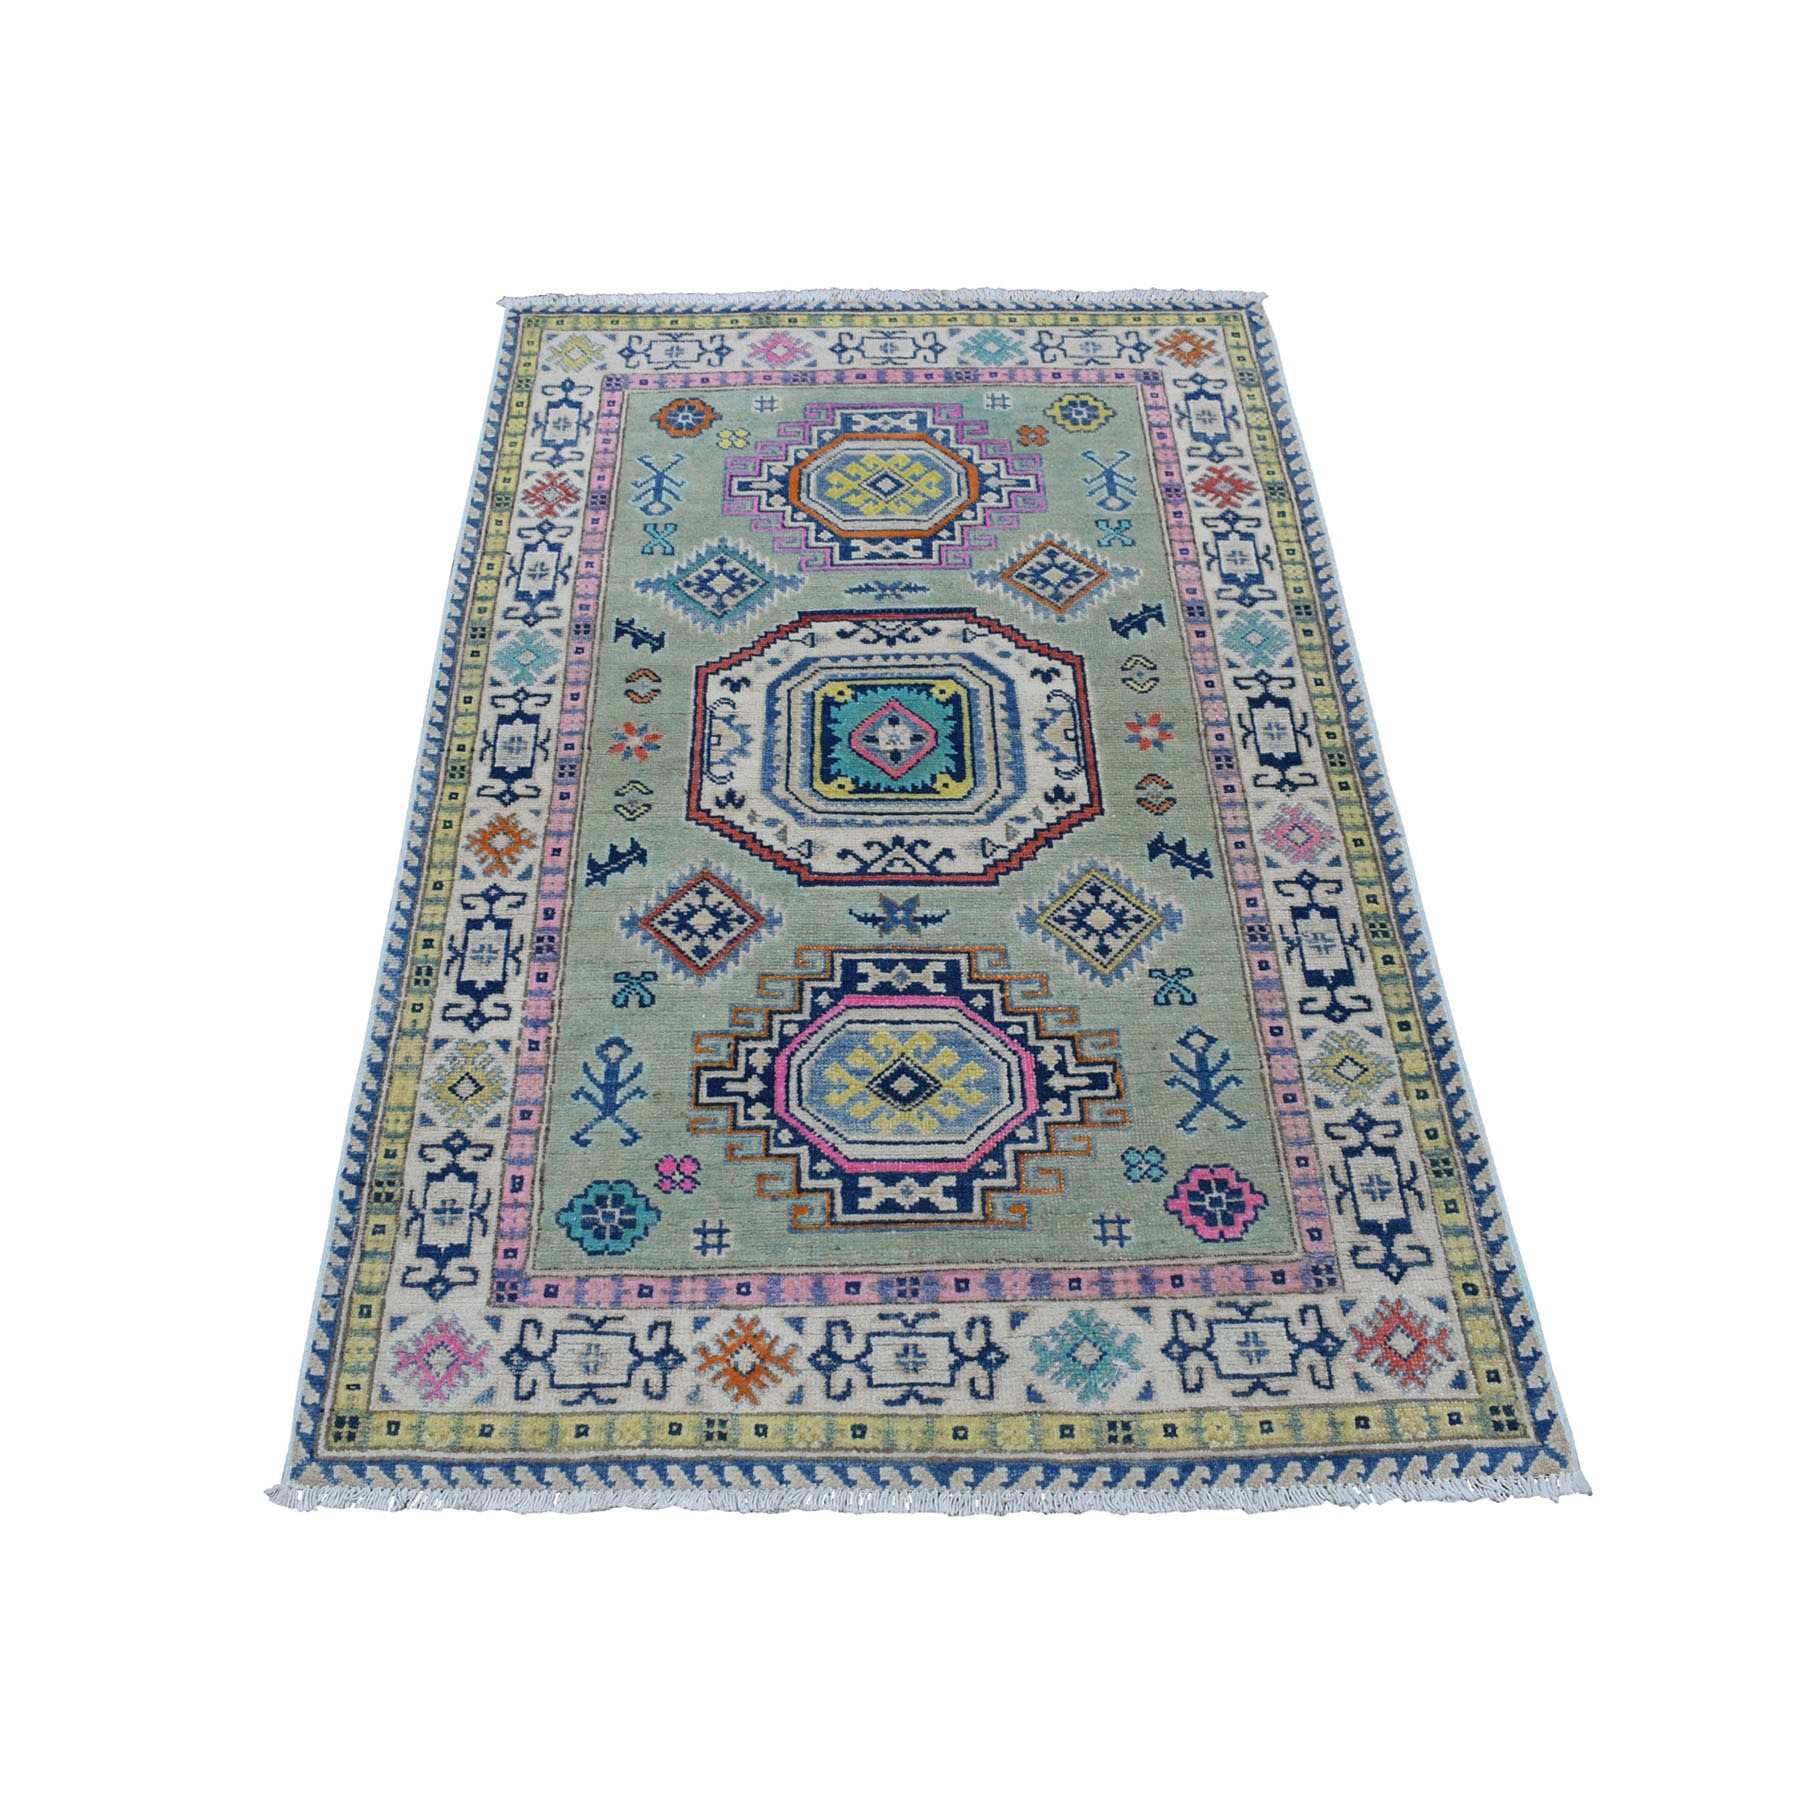 "3'3""x5' Colorful Gray Fusion Kazak Pure Wool Geometric Design Hand Woven Oriental Rug"